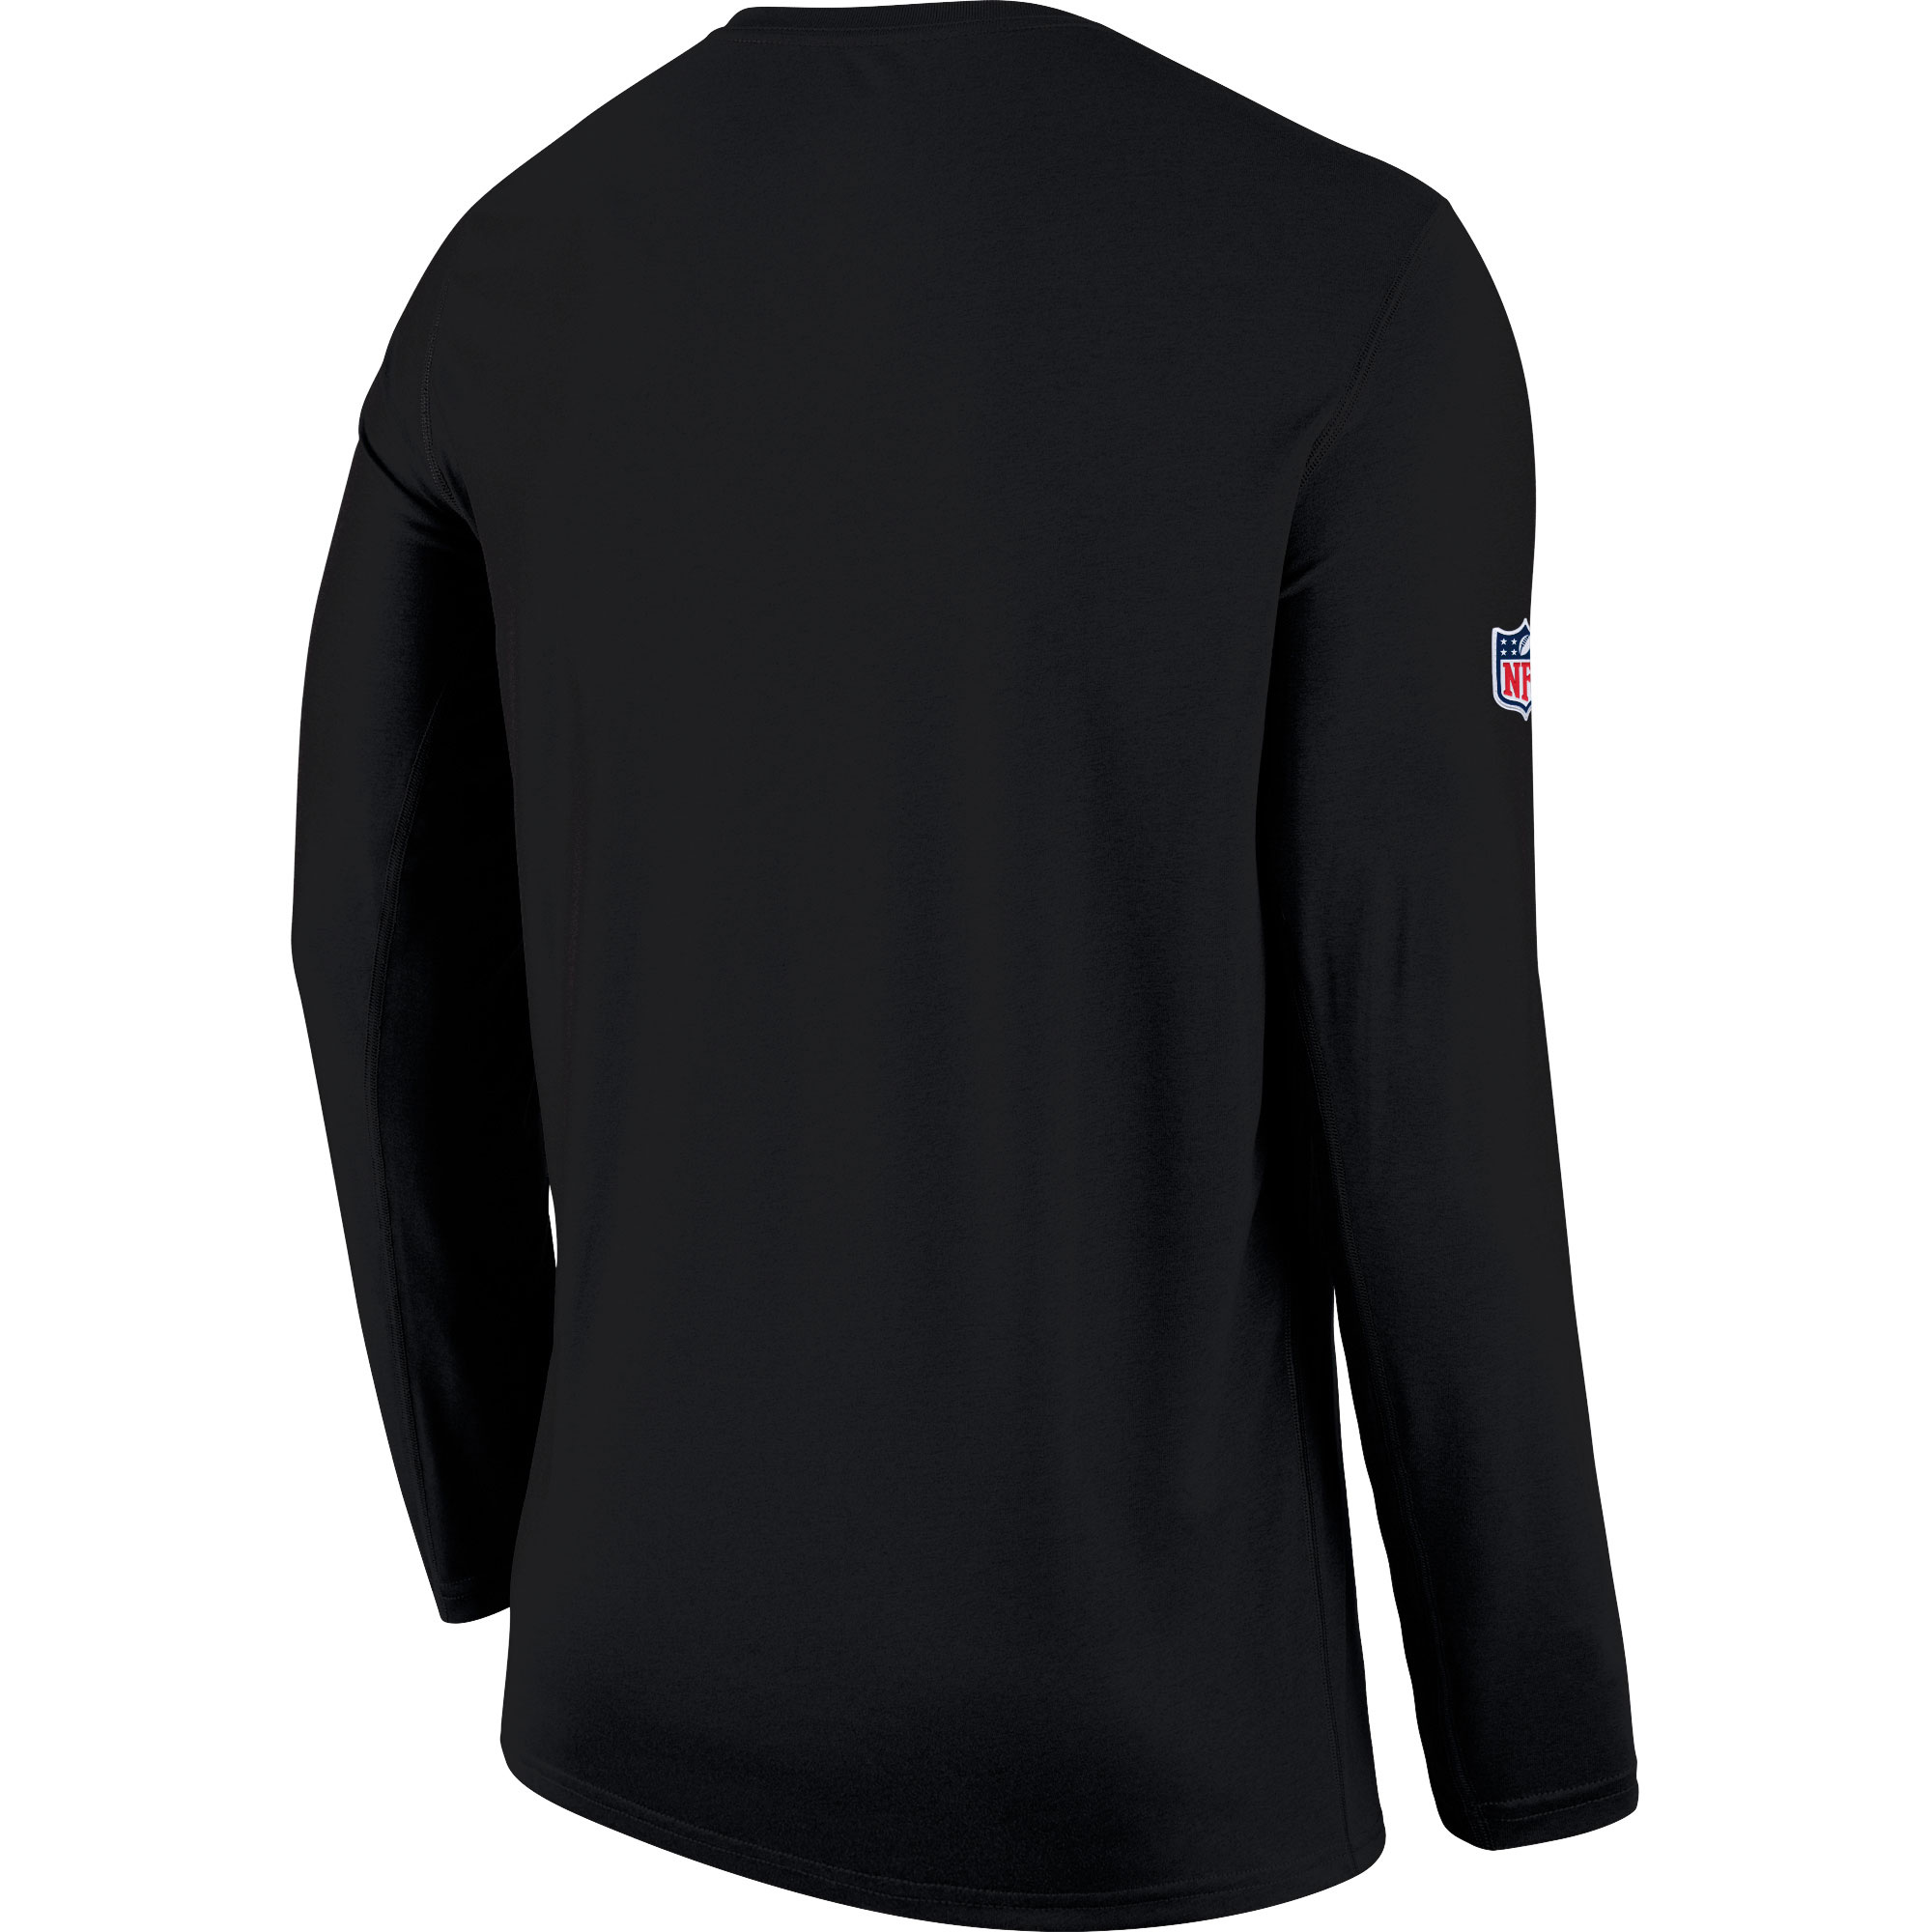 c91a412a8 Carolina Panthers Nike Sideline Seismic Legend Long Sleeve T-Shirt - Black